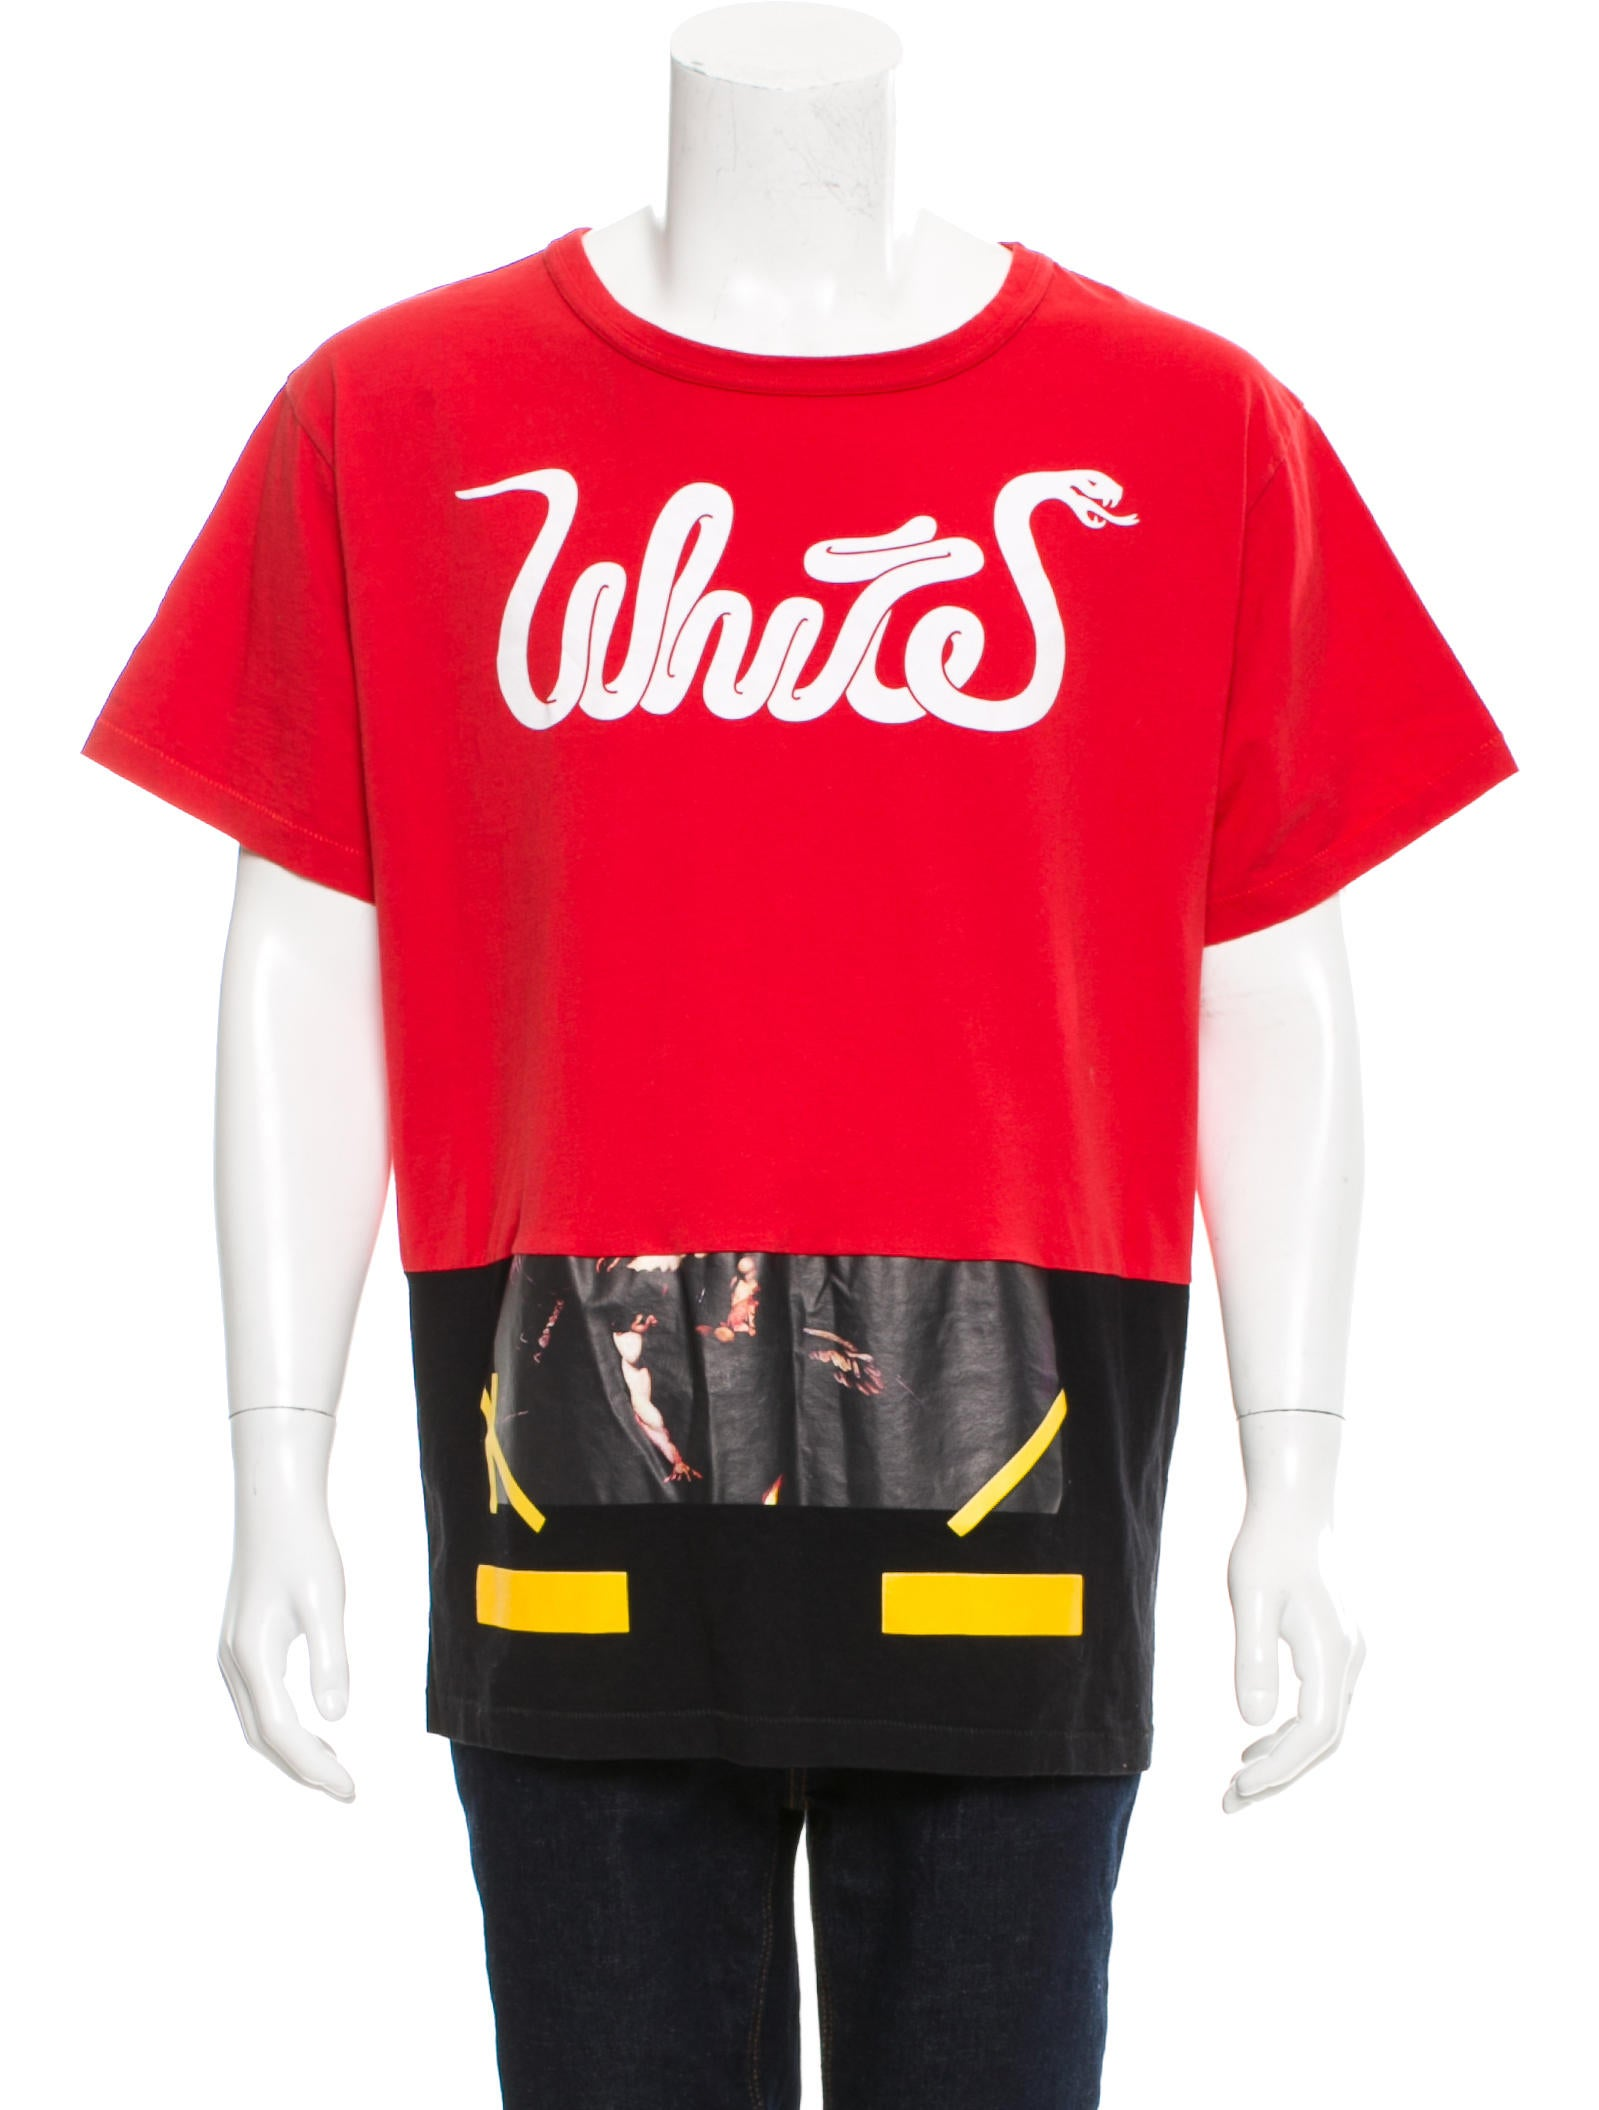 Off white patchwork graphic print t shirt clothing for T shirt graphic printing